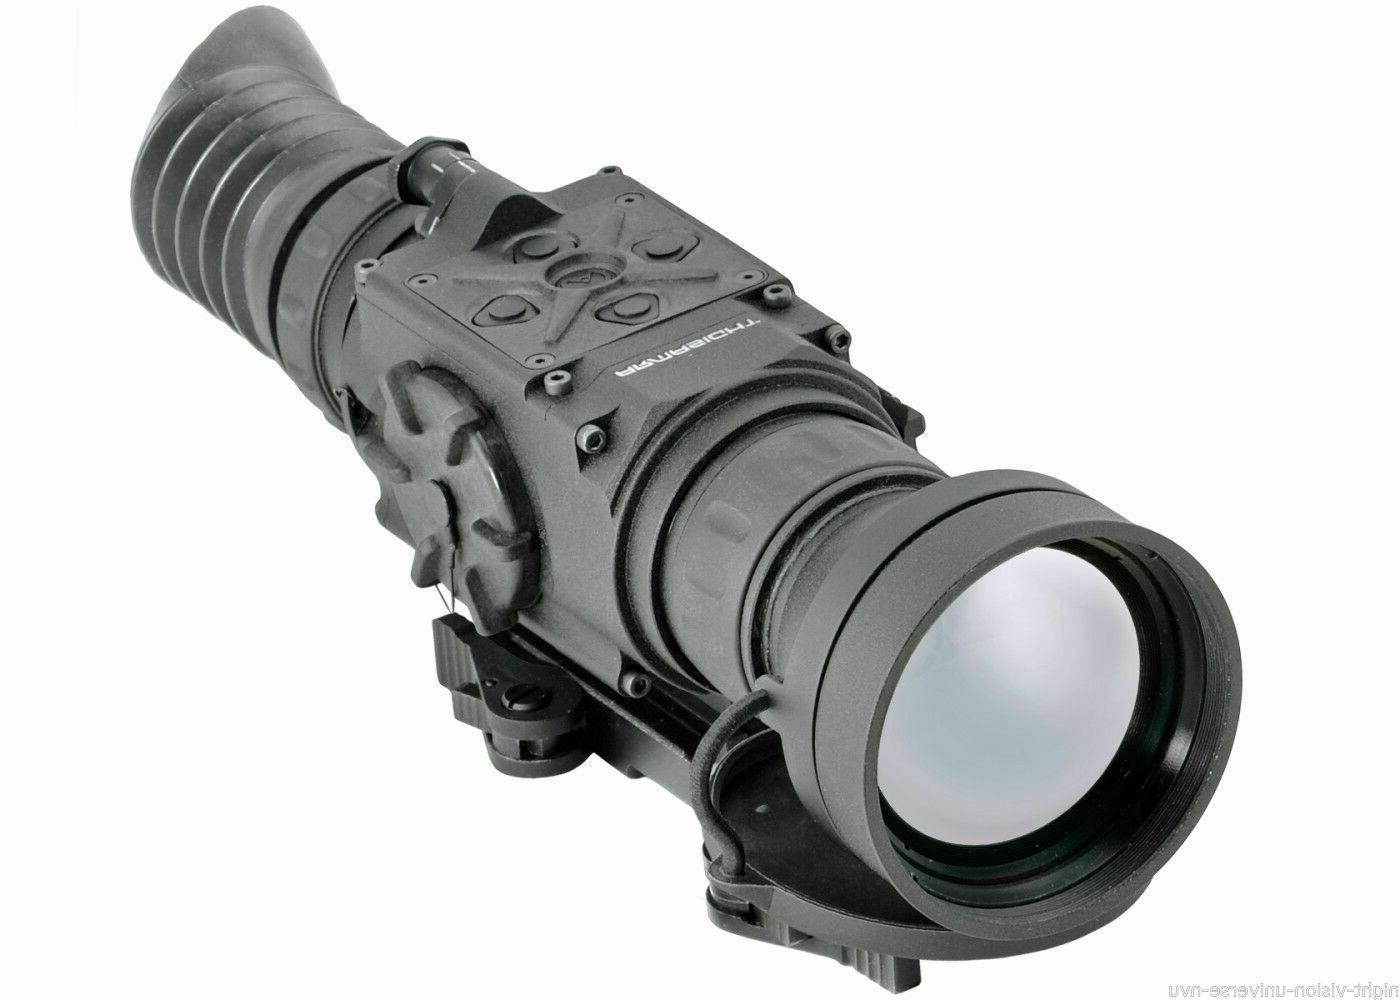 Armasight by 336 5-20x75mm Imaging Rifle 2 336x256 17 micron